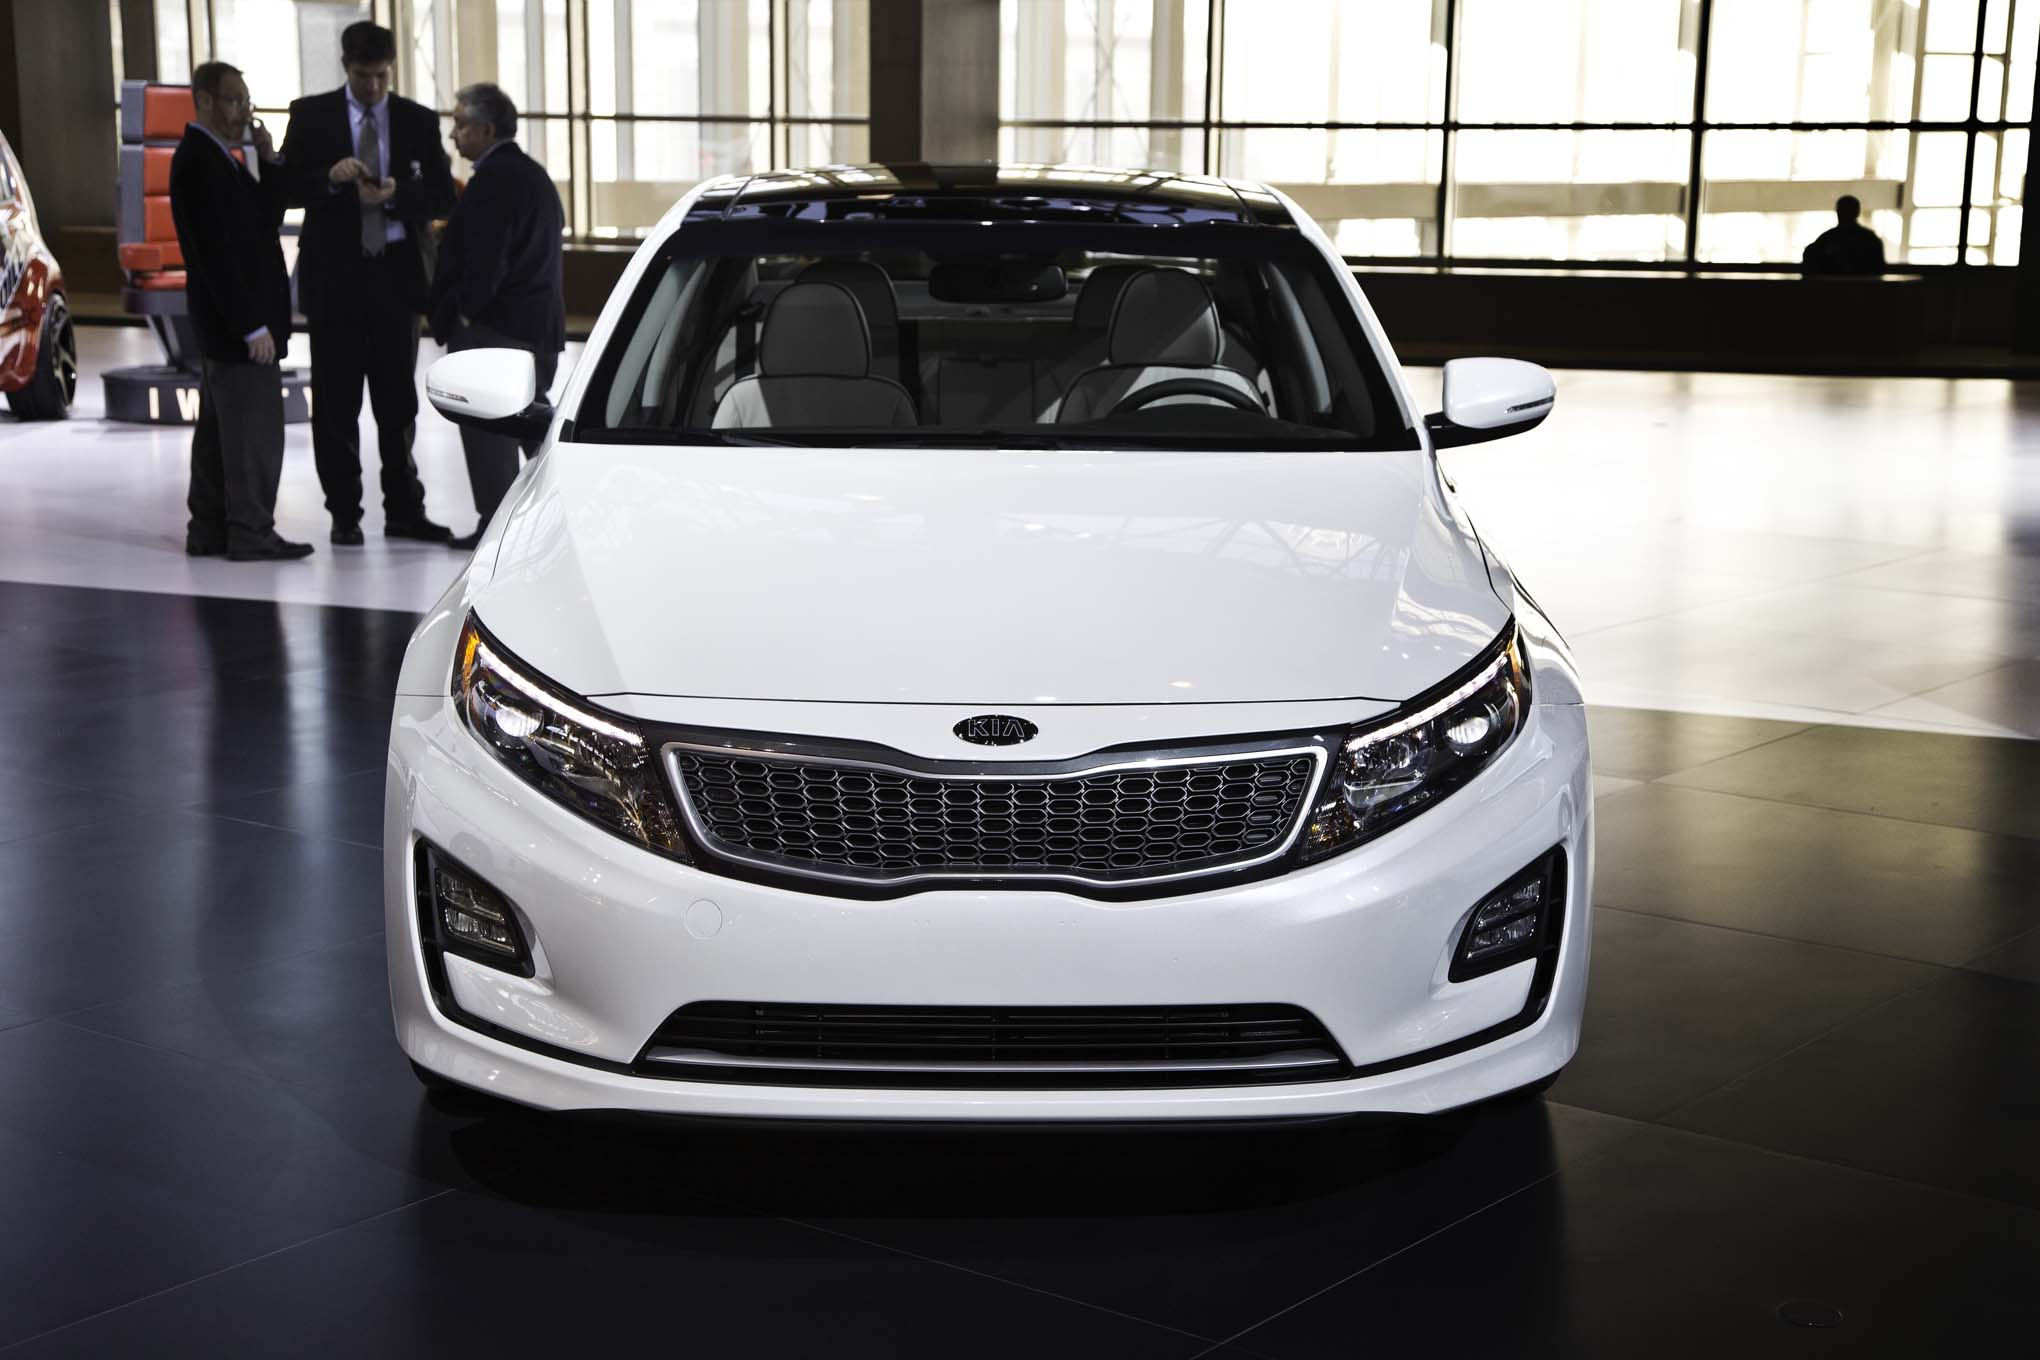 auto players chicago new cas hybrid unveiled all optima hr at kia show english